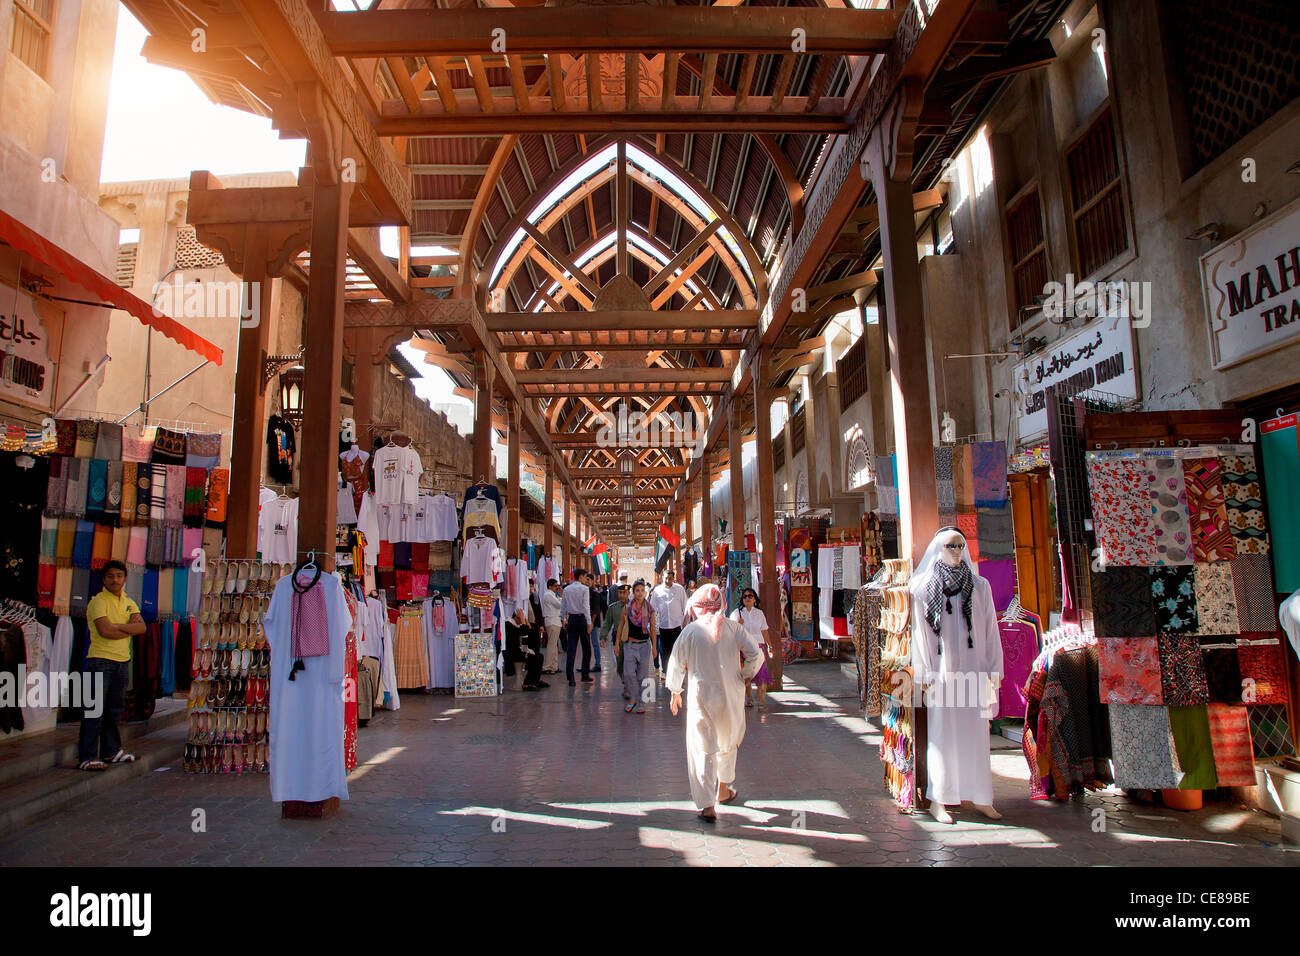 Asia, Arabia, Dubai Emirate, Dubai, Bur Dubai, Bur Dubai Souq Stock Photo